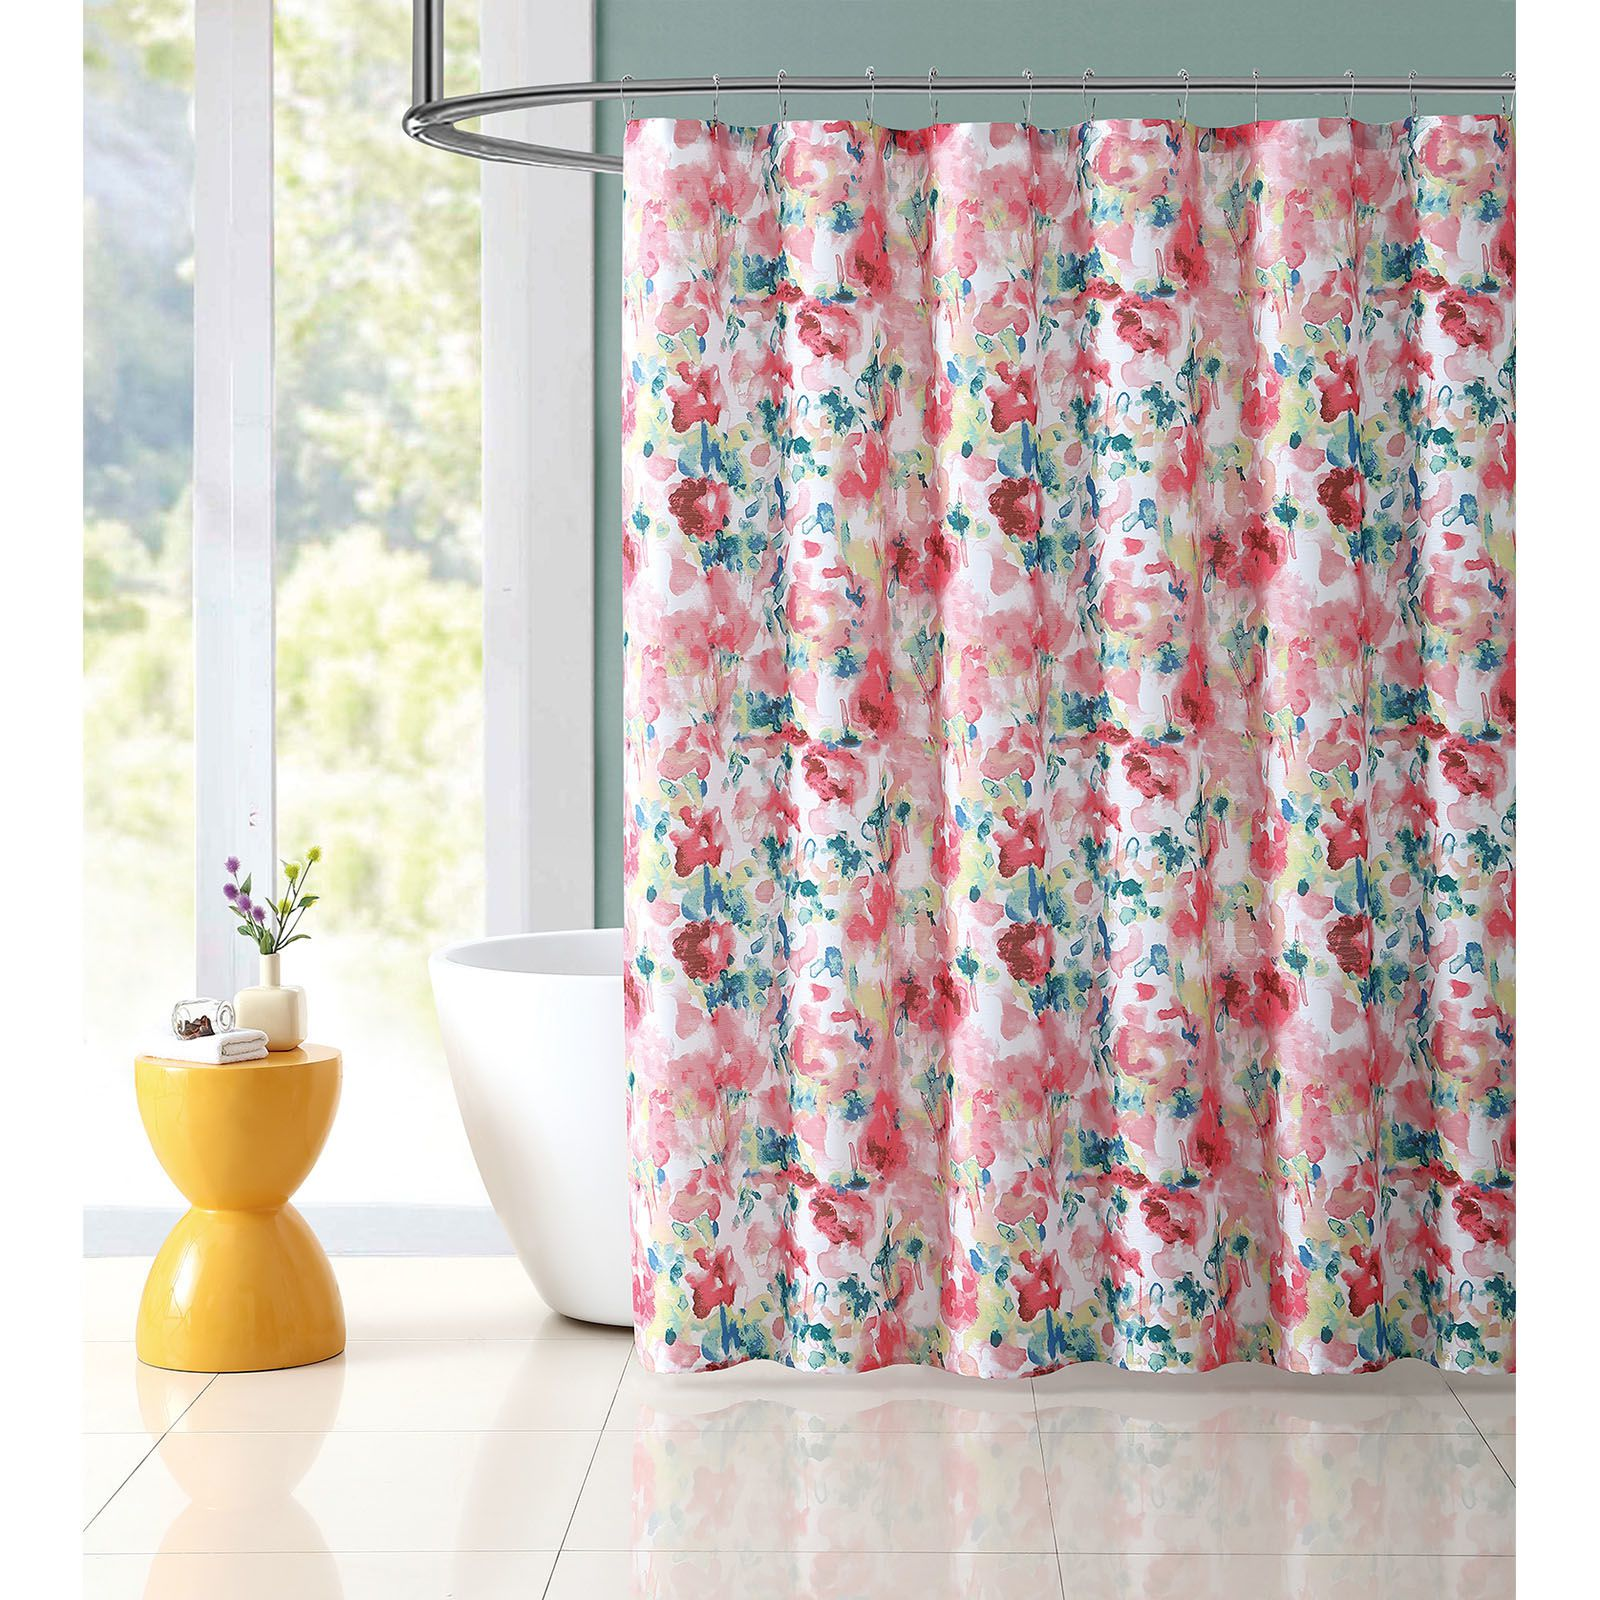 Marvelous bright tropical floral. Curtains clipart shower curtain clipart library download